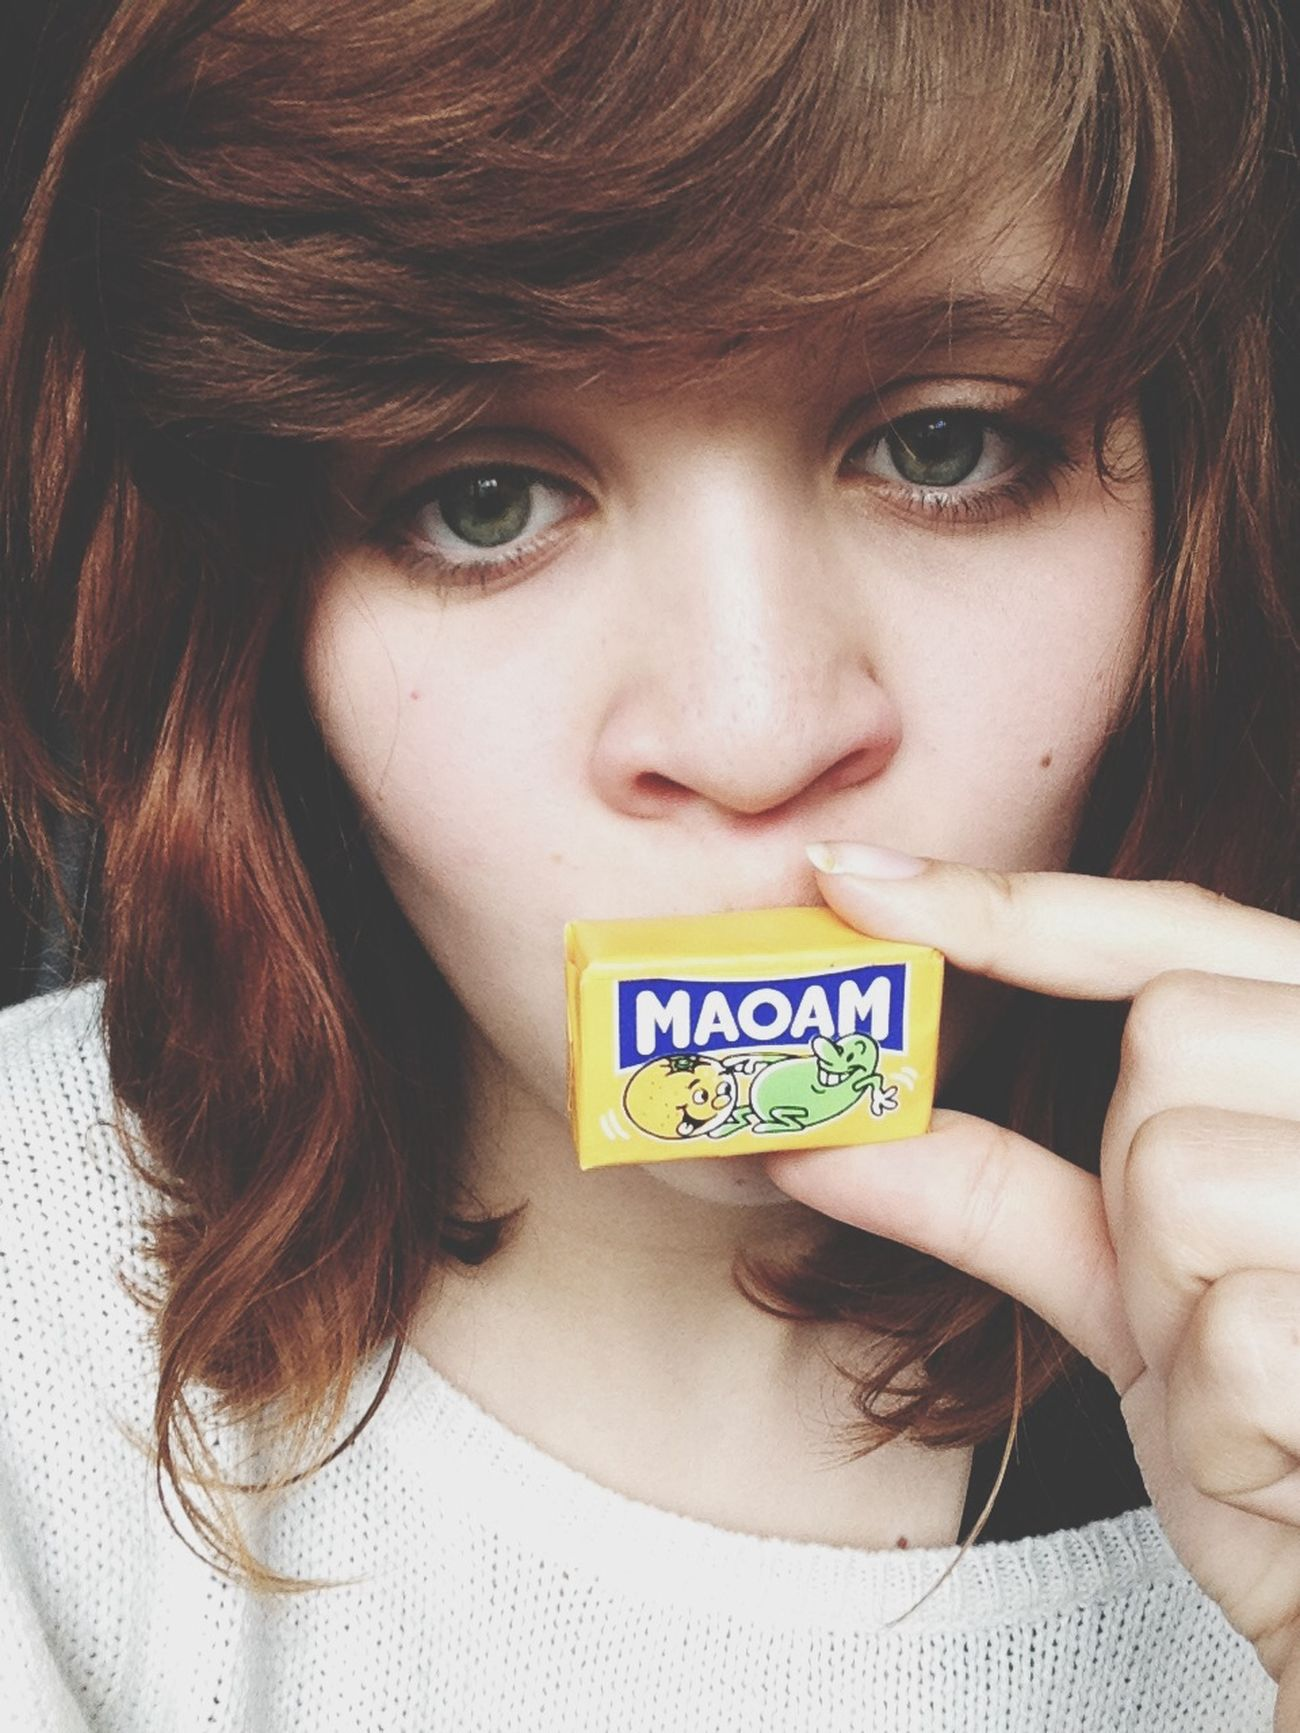 Big Maoam Love *_* Maoam Girl Selife Today